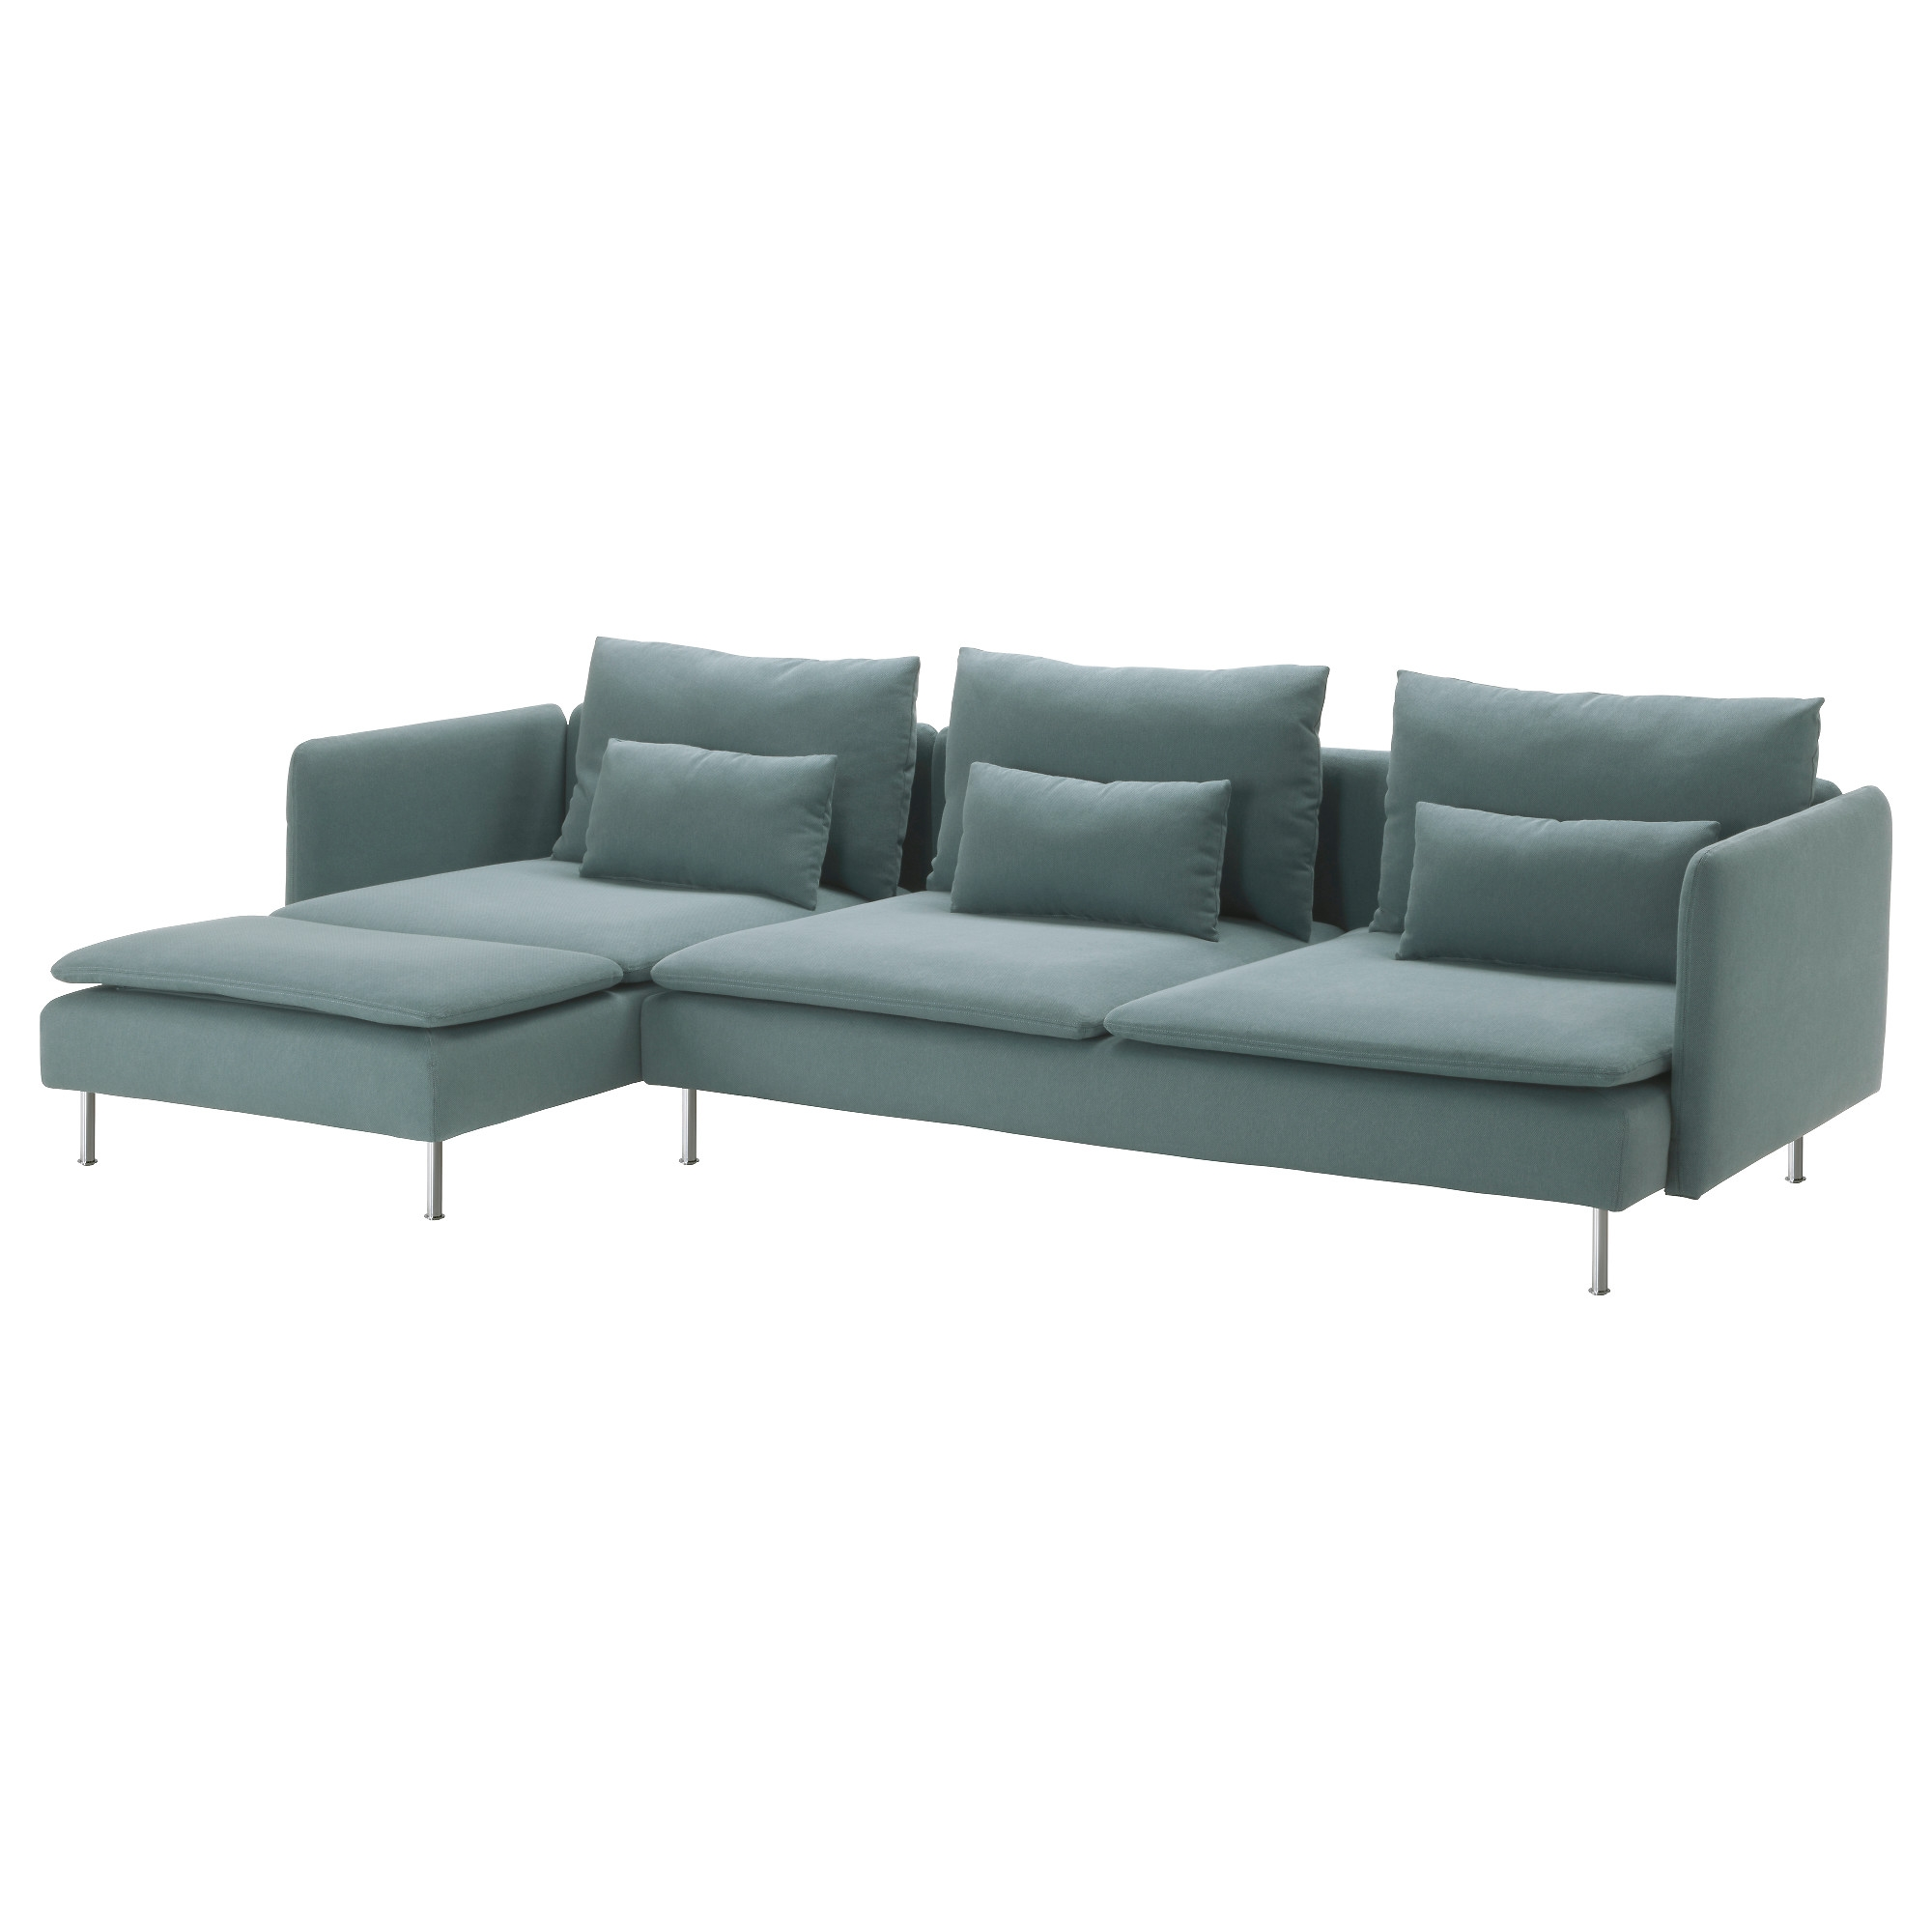 Sectional Sofas Couches Ikea With Compact Sectional Sofas (Image 11 of 15)